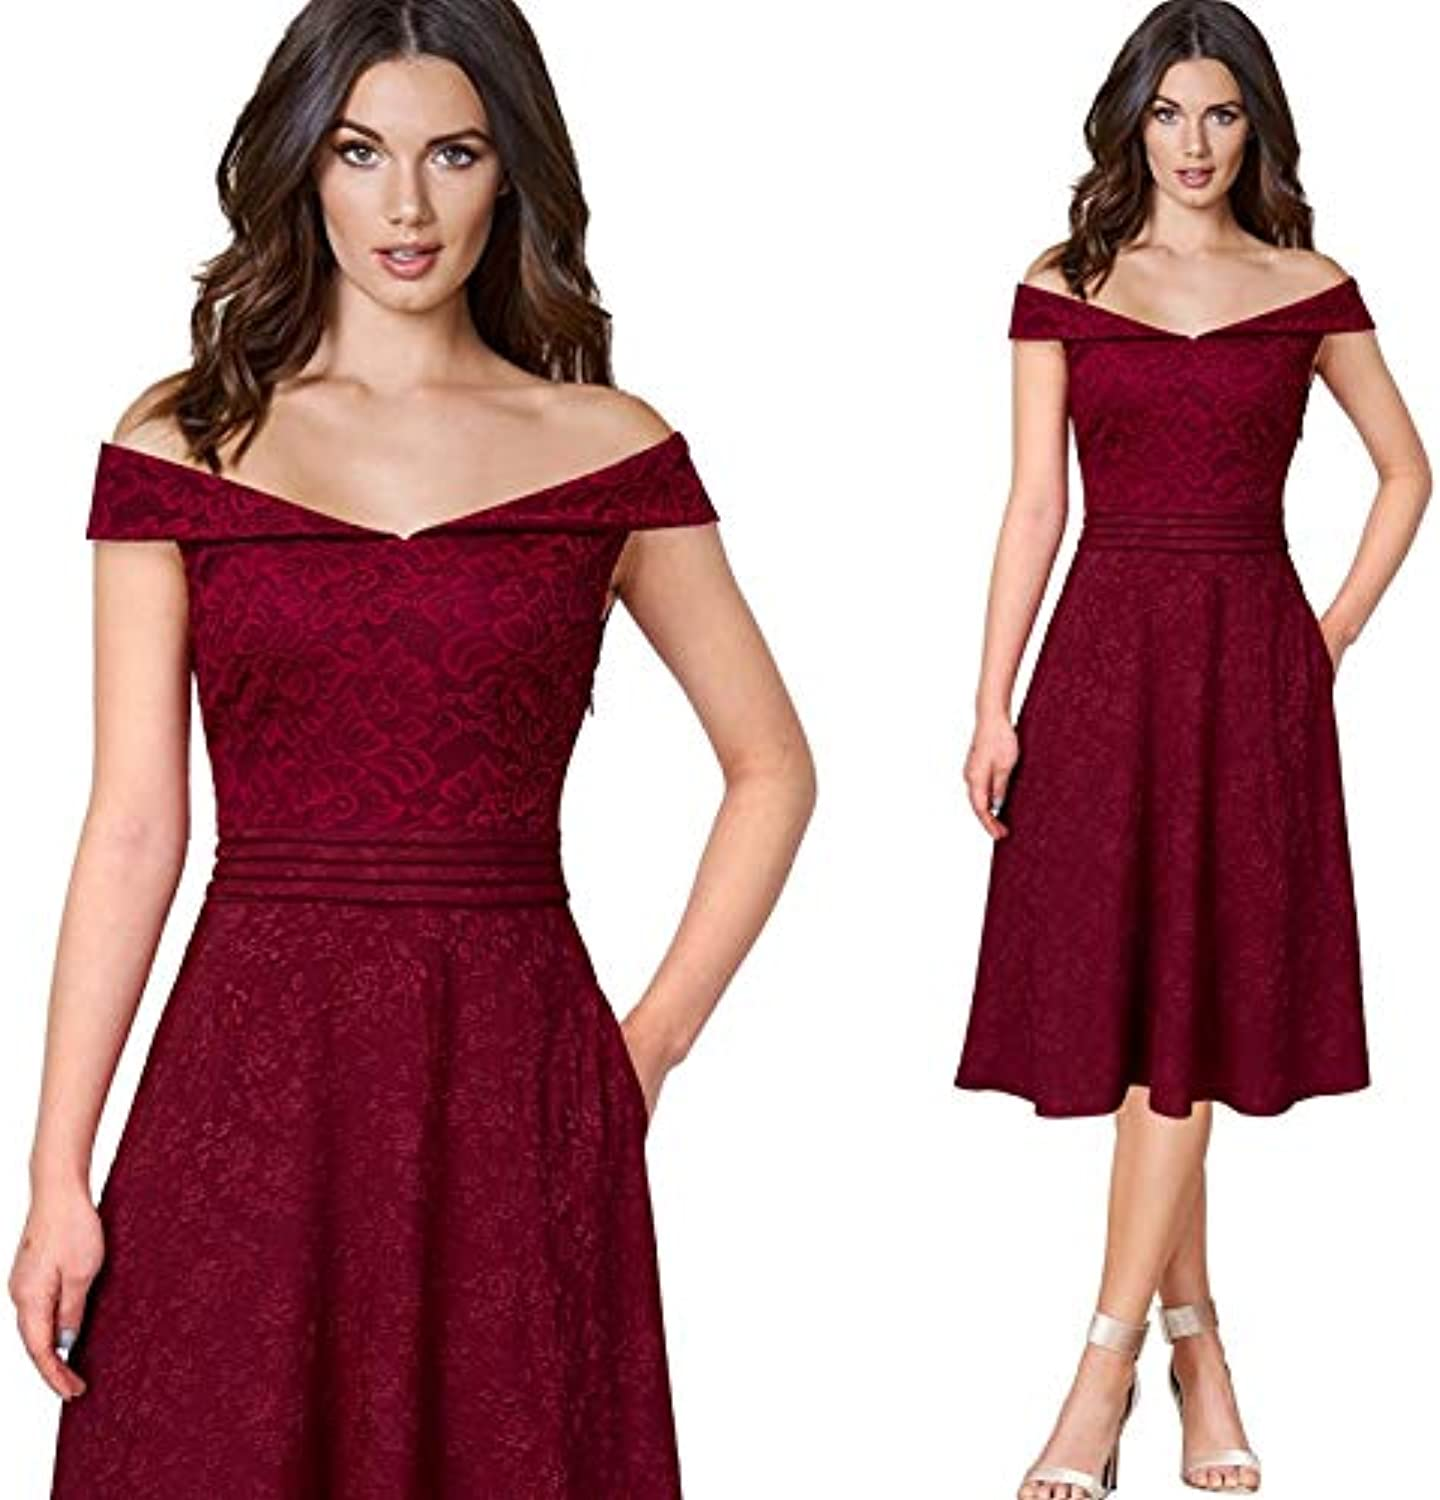 MTBDLYQ Woman'S Dress,Women Off Shoulder Floral Lace Dobby Fabric Patchwork Pockets Cocktail Party Club A-Line Dress